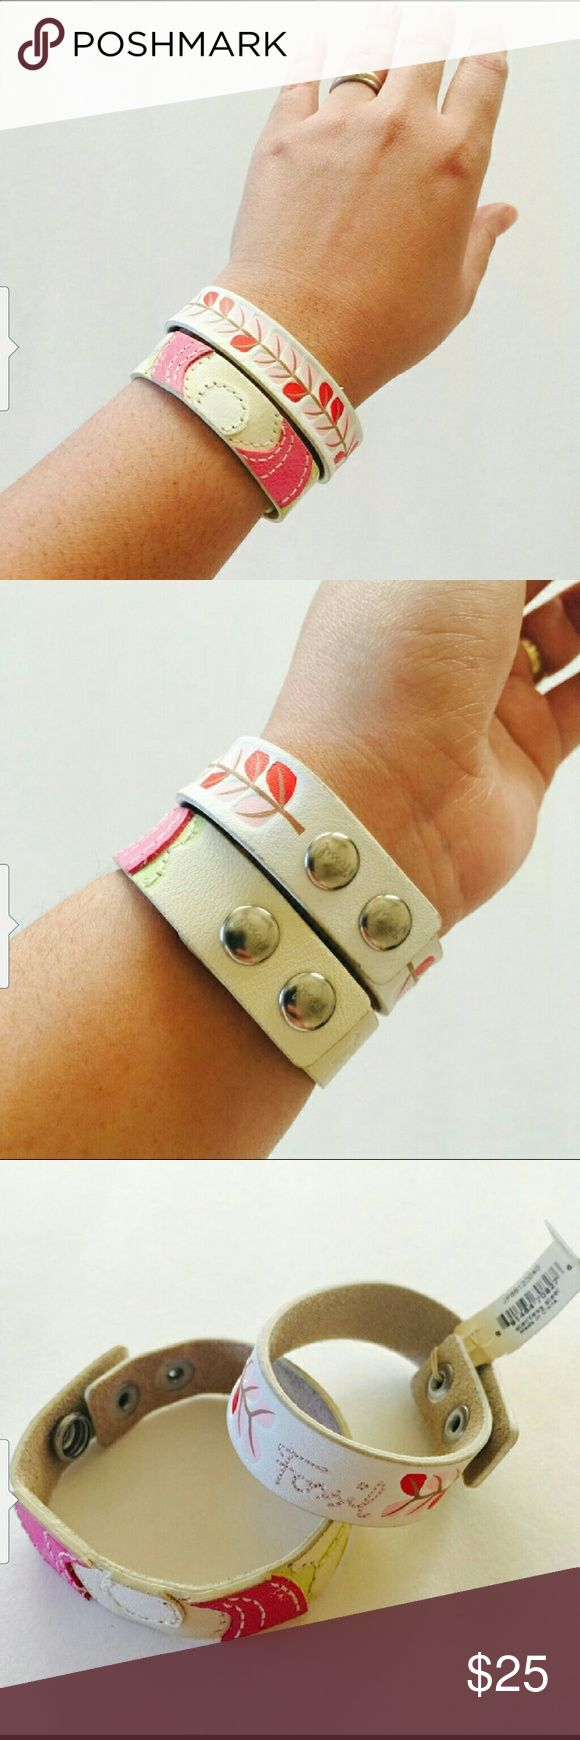 2 PC BUNDLE OF FOSSIL BRACELETS 2 beautiful FOSSIL BRACELETS 1. is new 2. Is in euc...worn 2 times 25 for both or 15 for 1 2 snaps to fit any wrist Fossil Jewelry Bracelets